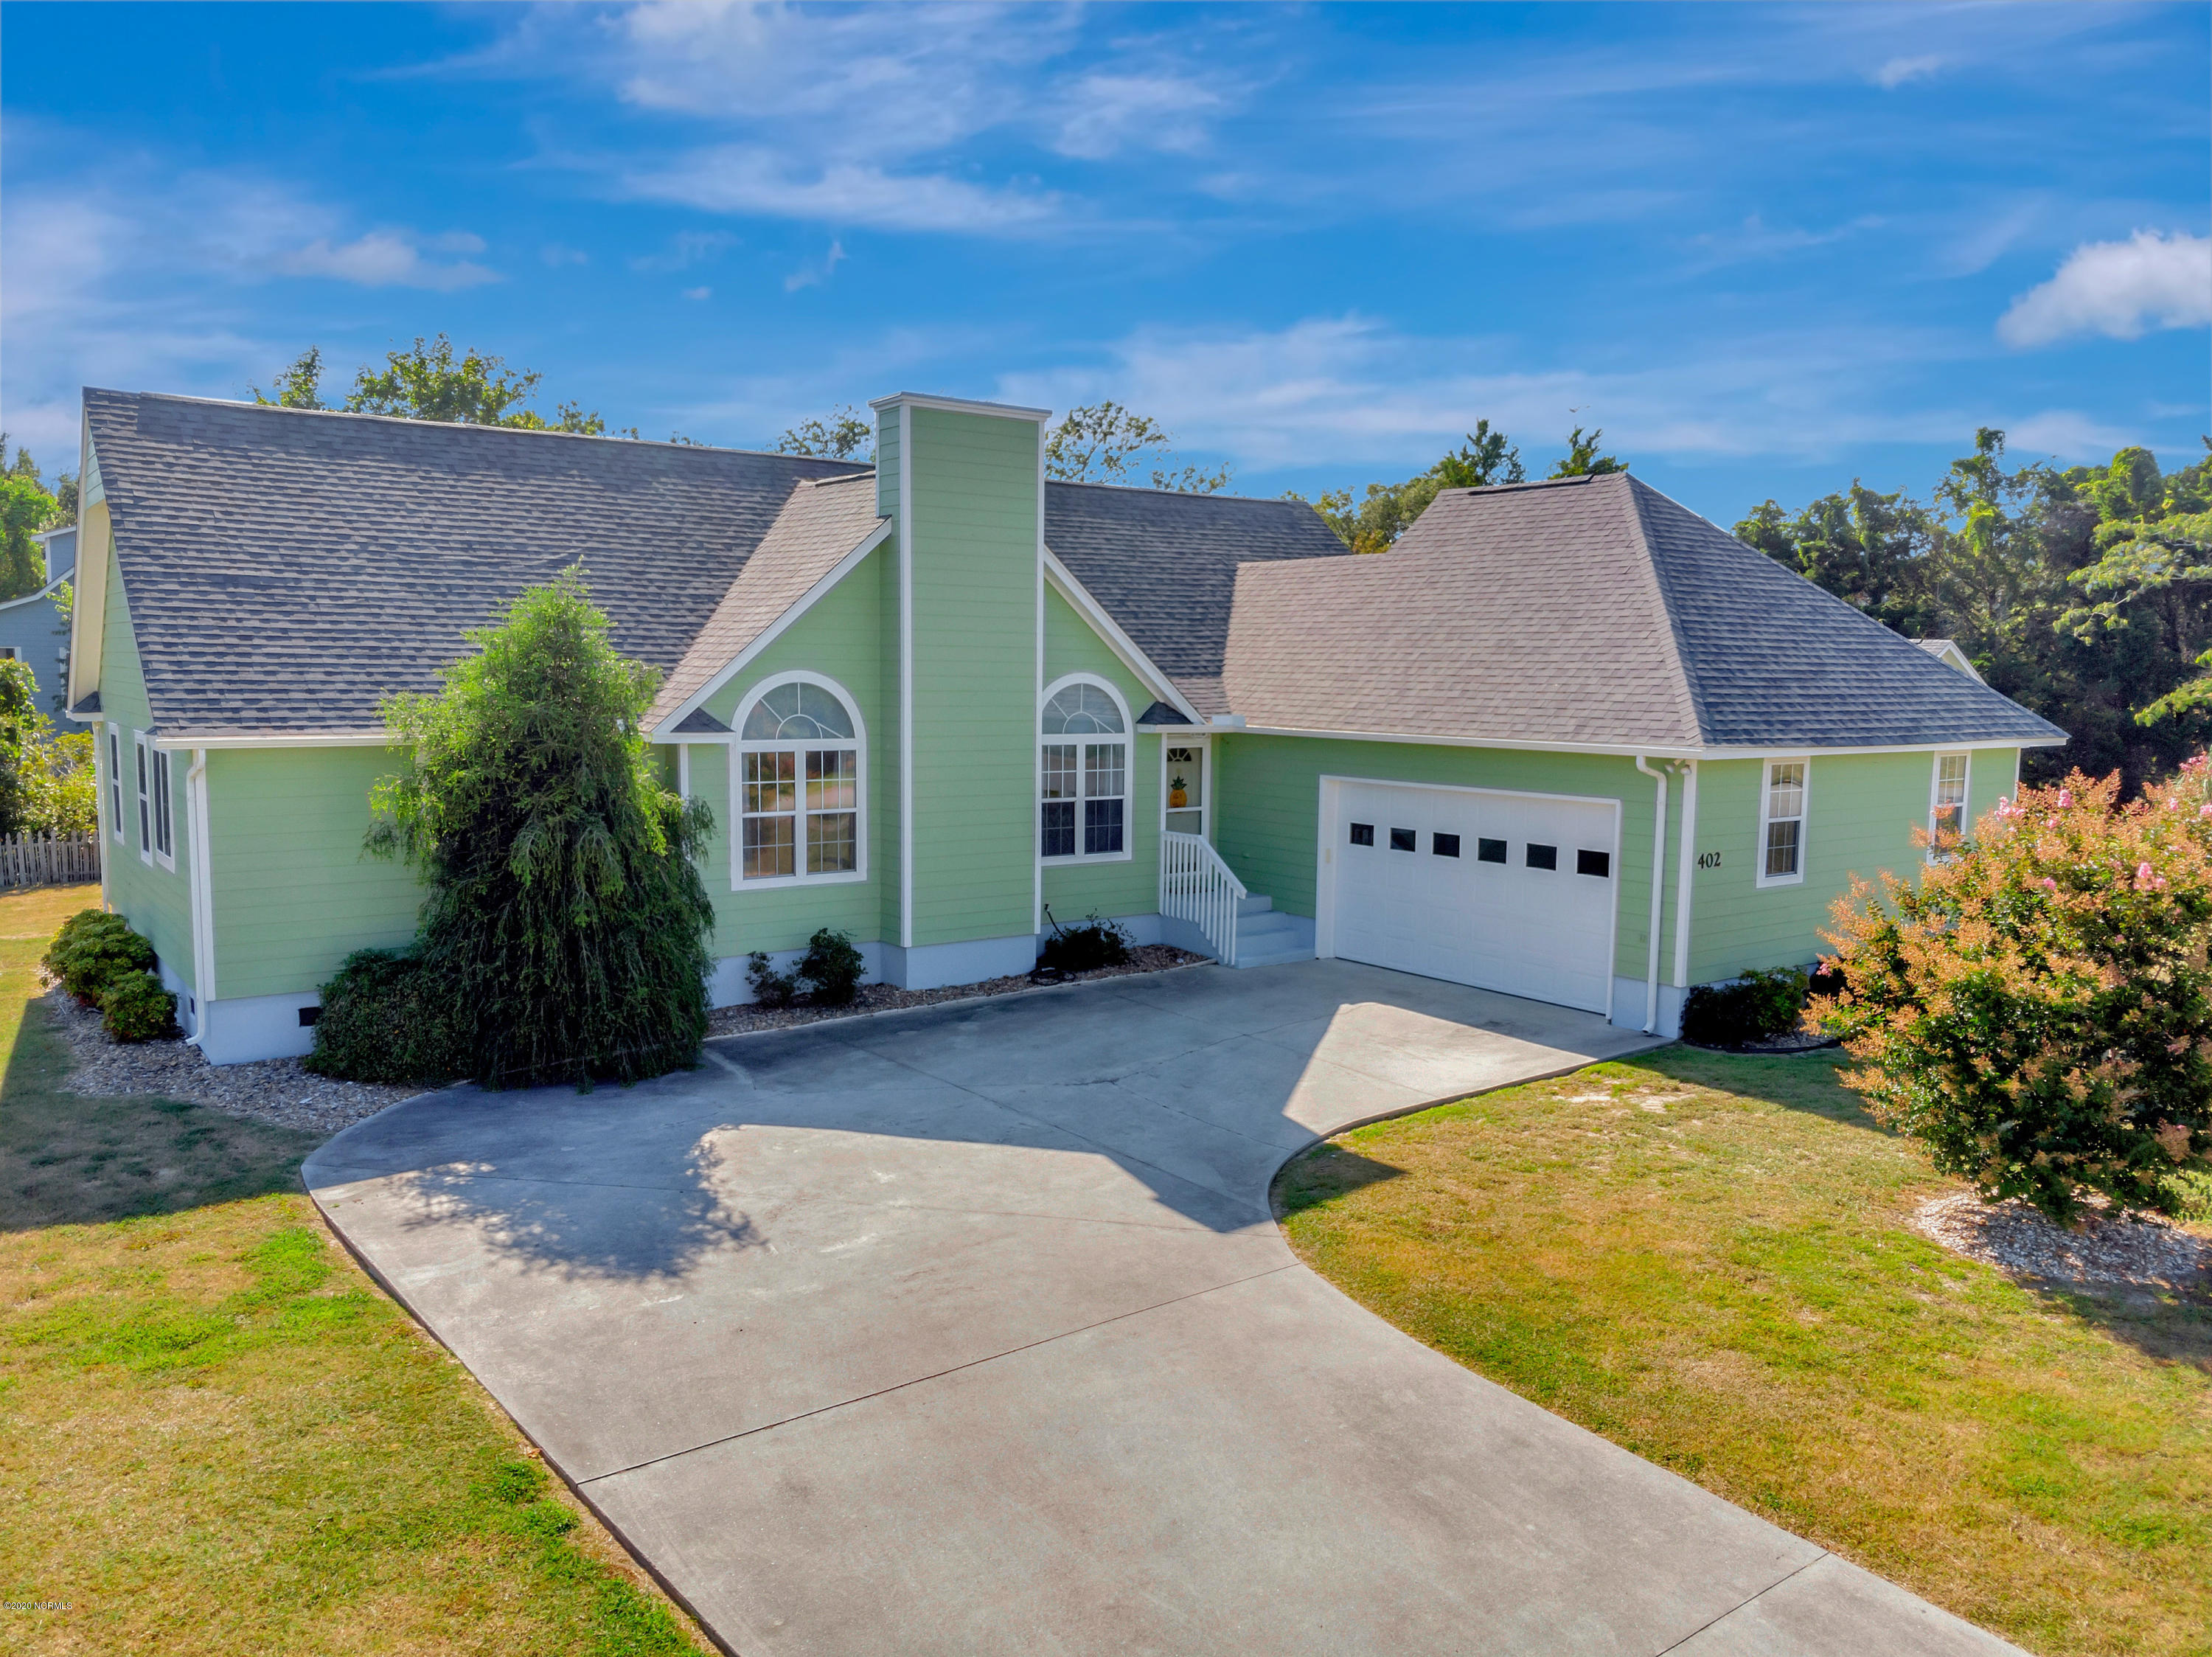 402 Shoreline Drive, Cedar Point, North Carolina 28584, 3 Bedrooms Bedrooms, ,2 BathroomsBathrooms,Residential,For Sale,Shoreline,100229377